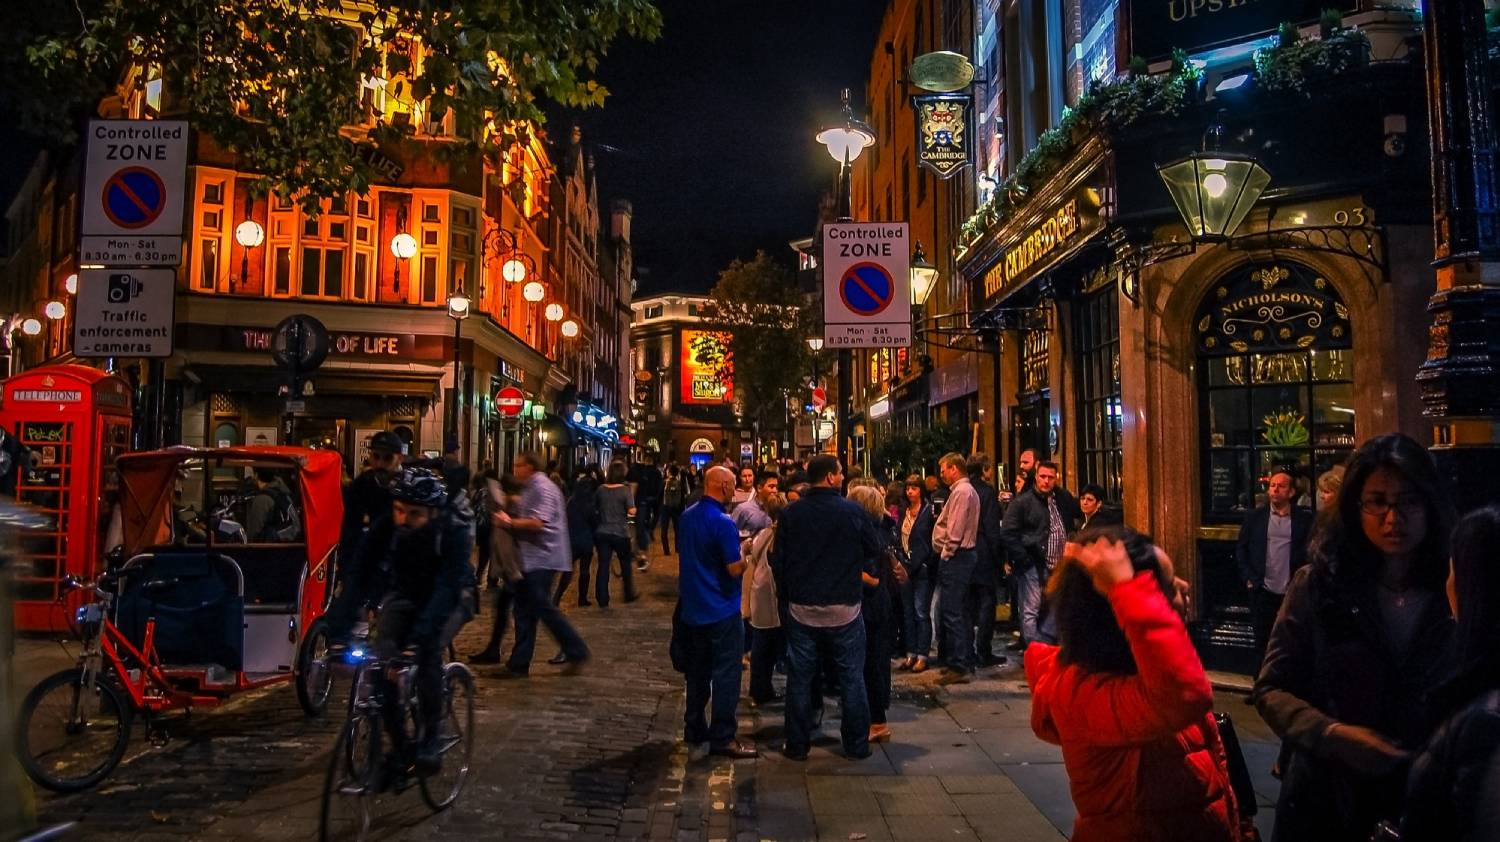 Soho - Things To Do In London